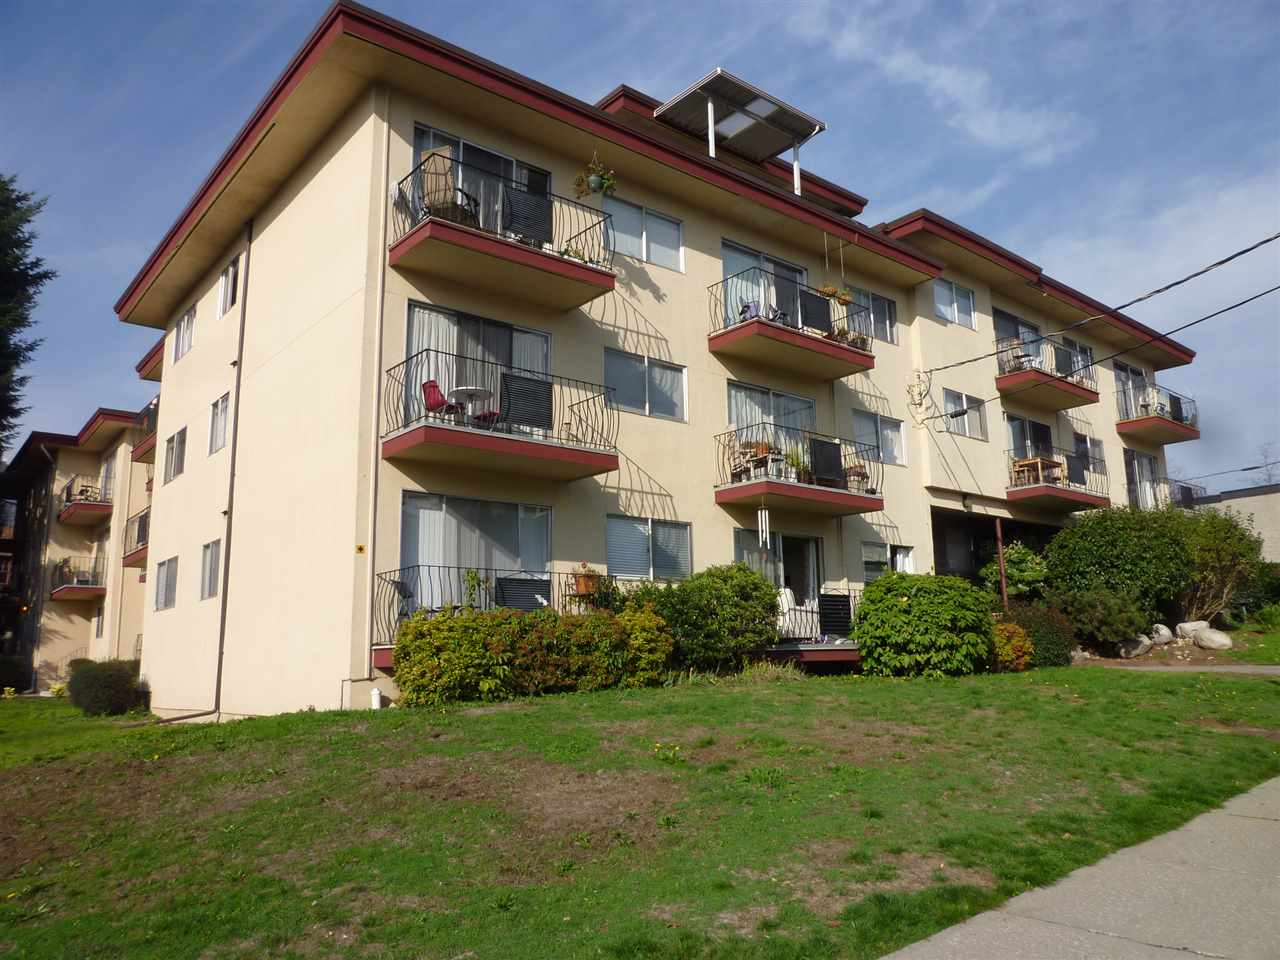 Photo 2: 209 611 BLACKFORD Street in New Westminster: Uptown NW Condo for sale : MLS® # R2011184